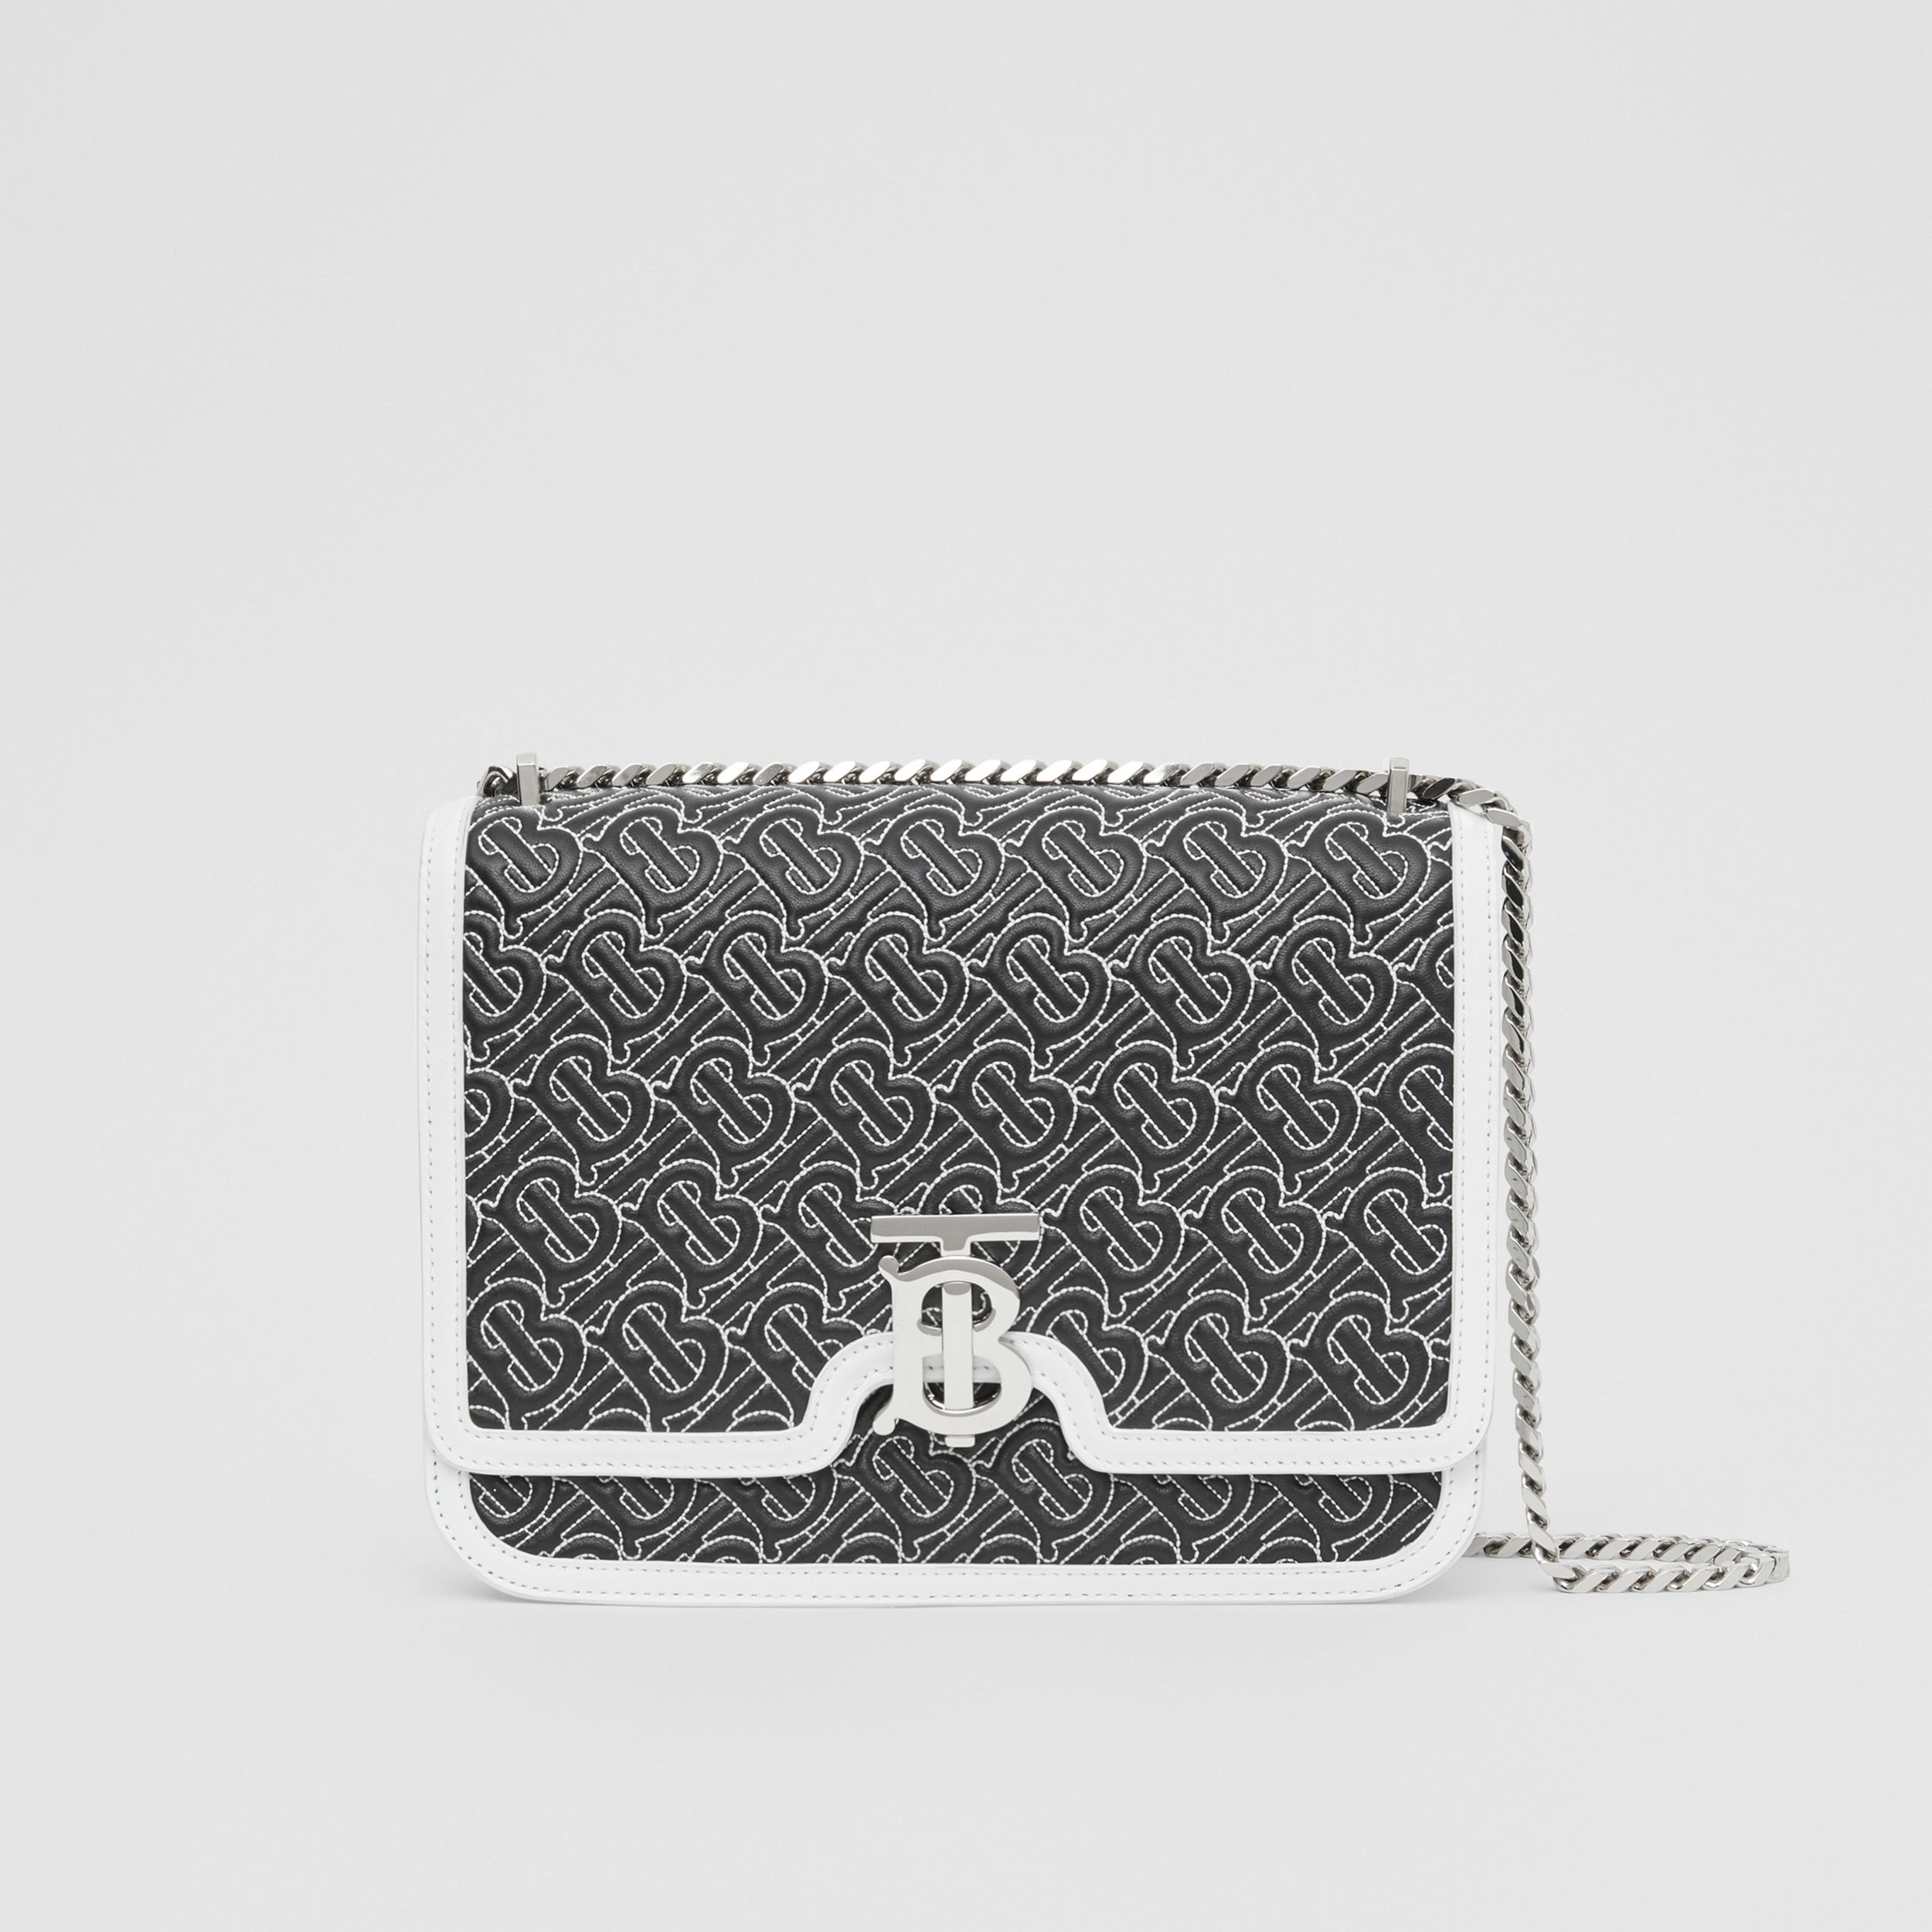 Medium Quilted Monogram Lambskin TB Bag in Black - Women | Burberry - 1